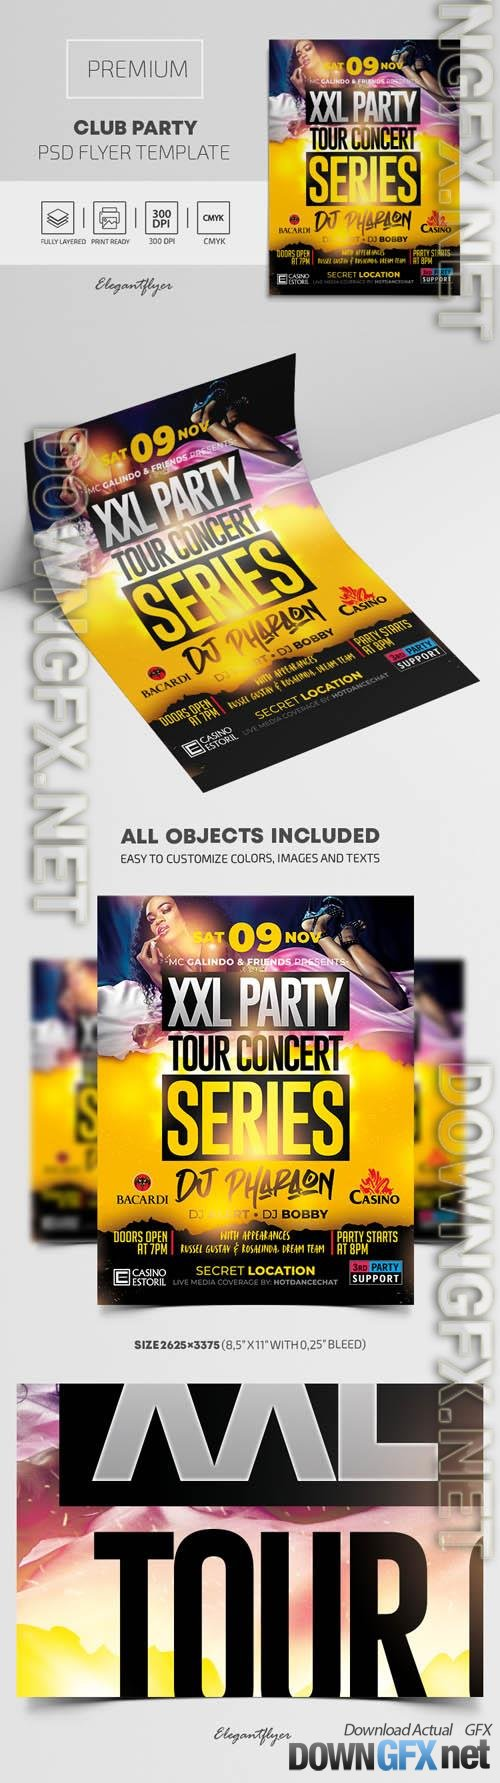 Club Party Premium PSD Flyer Template